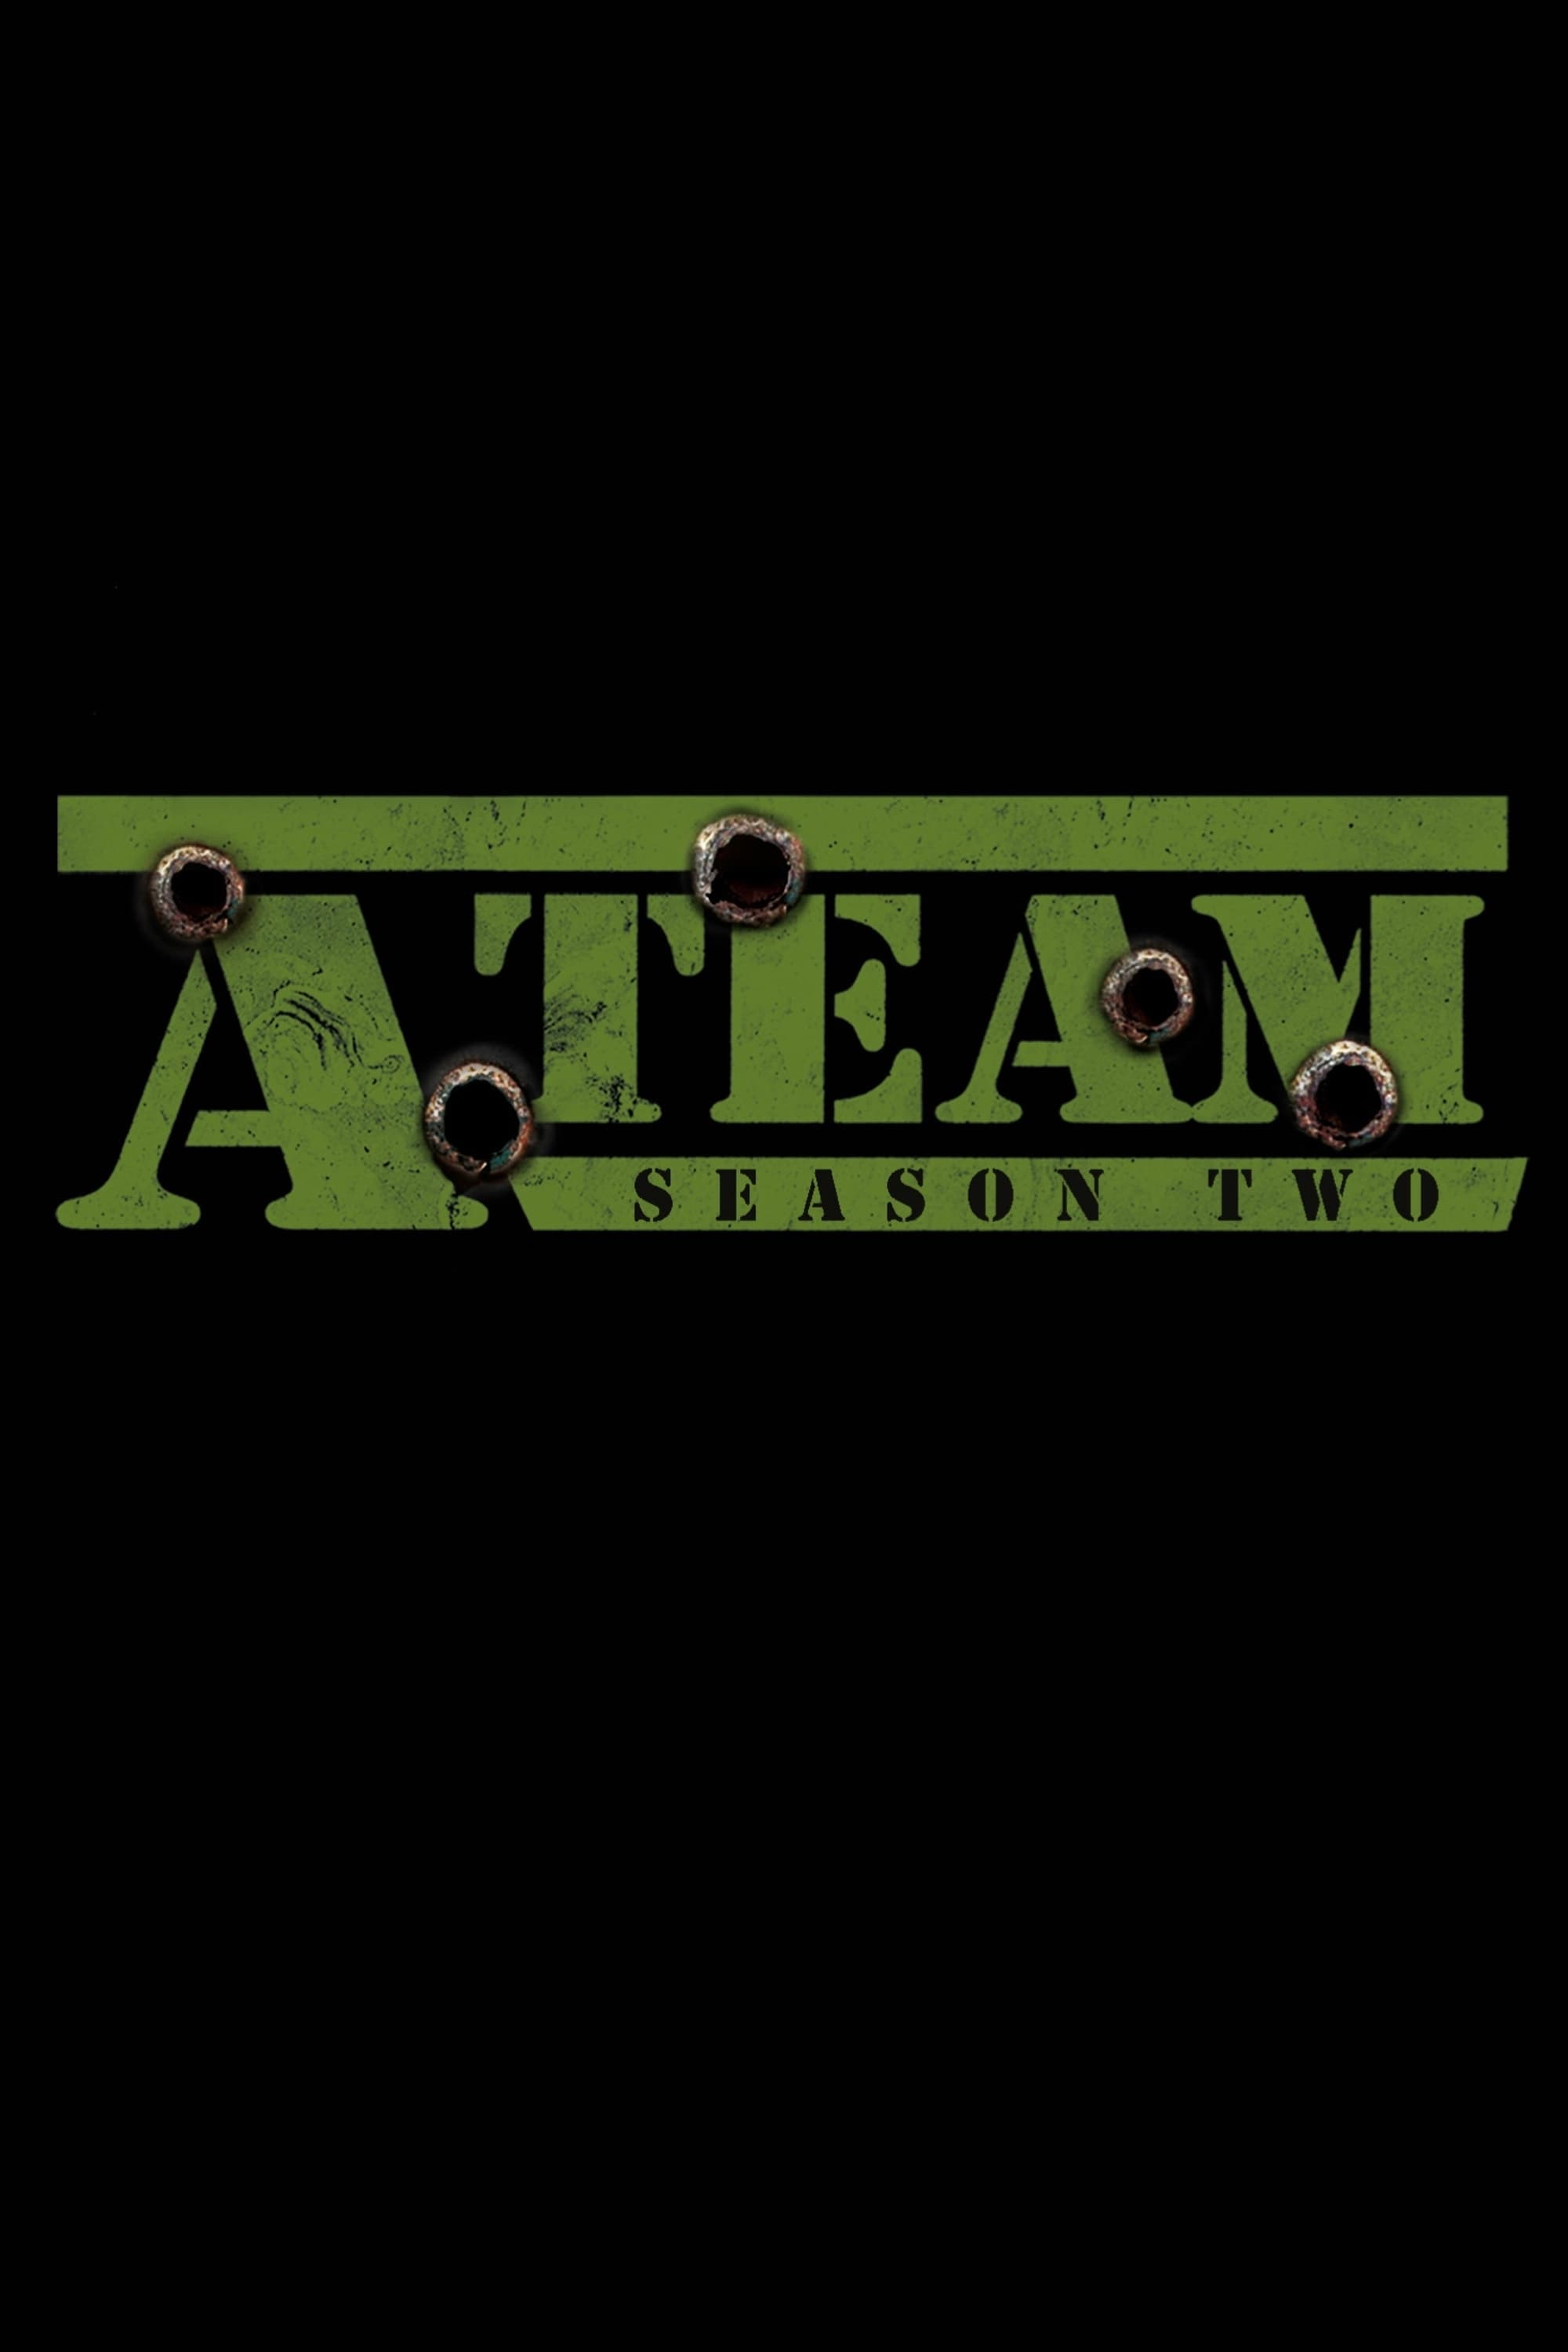 The A-Team Season 2